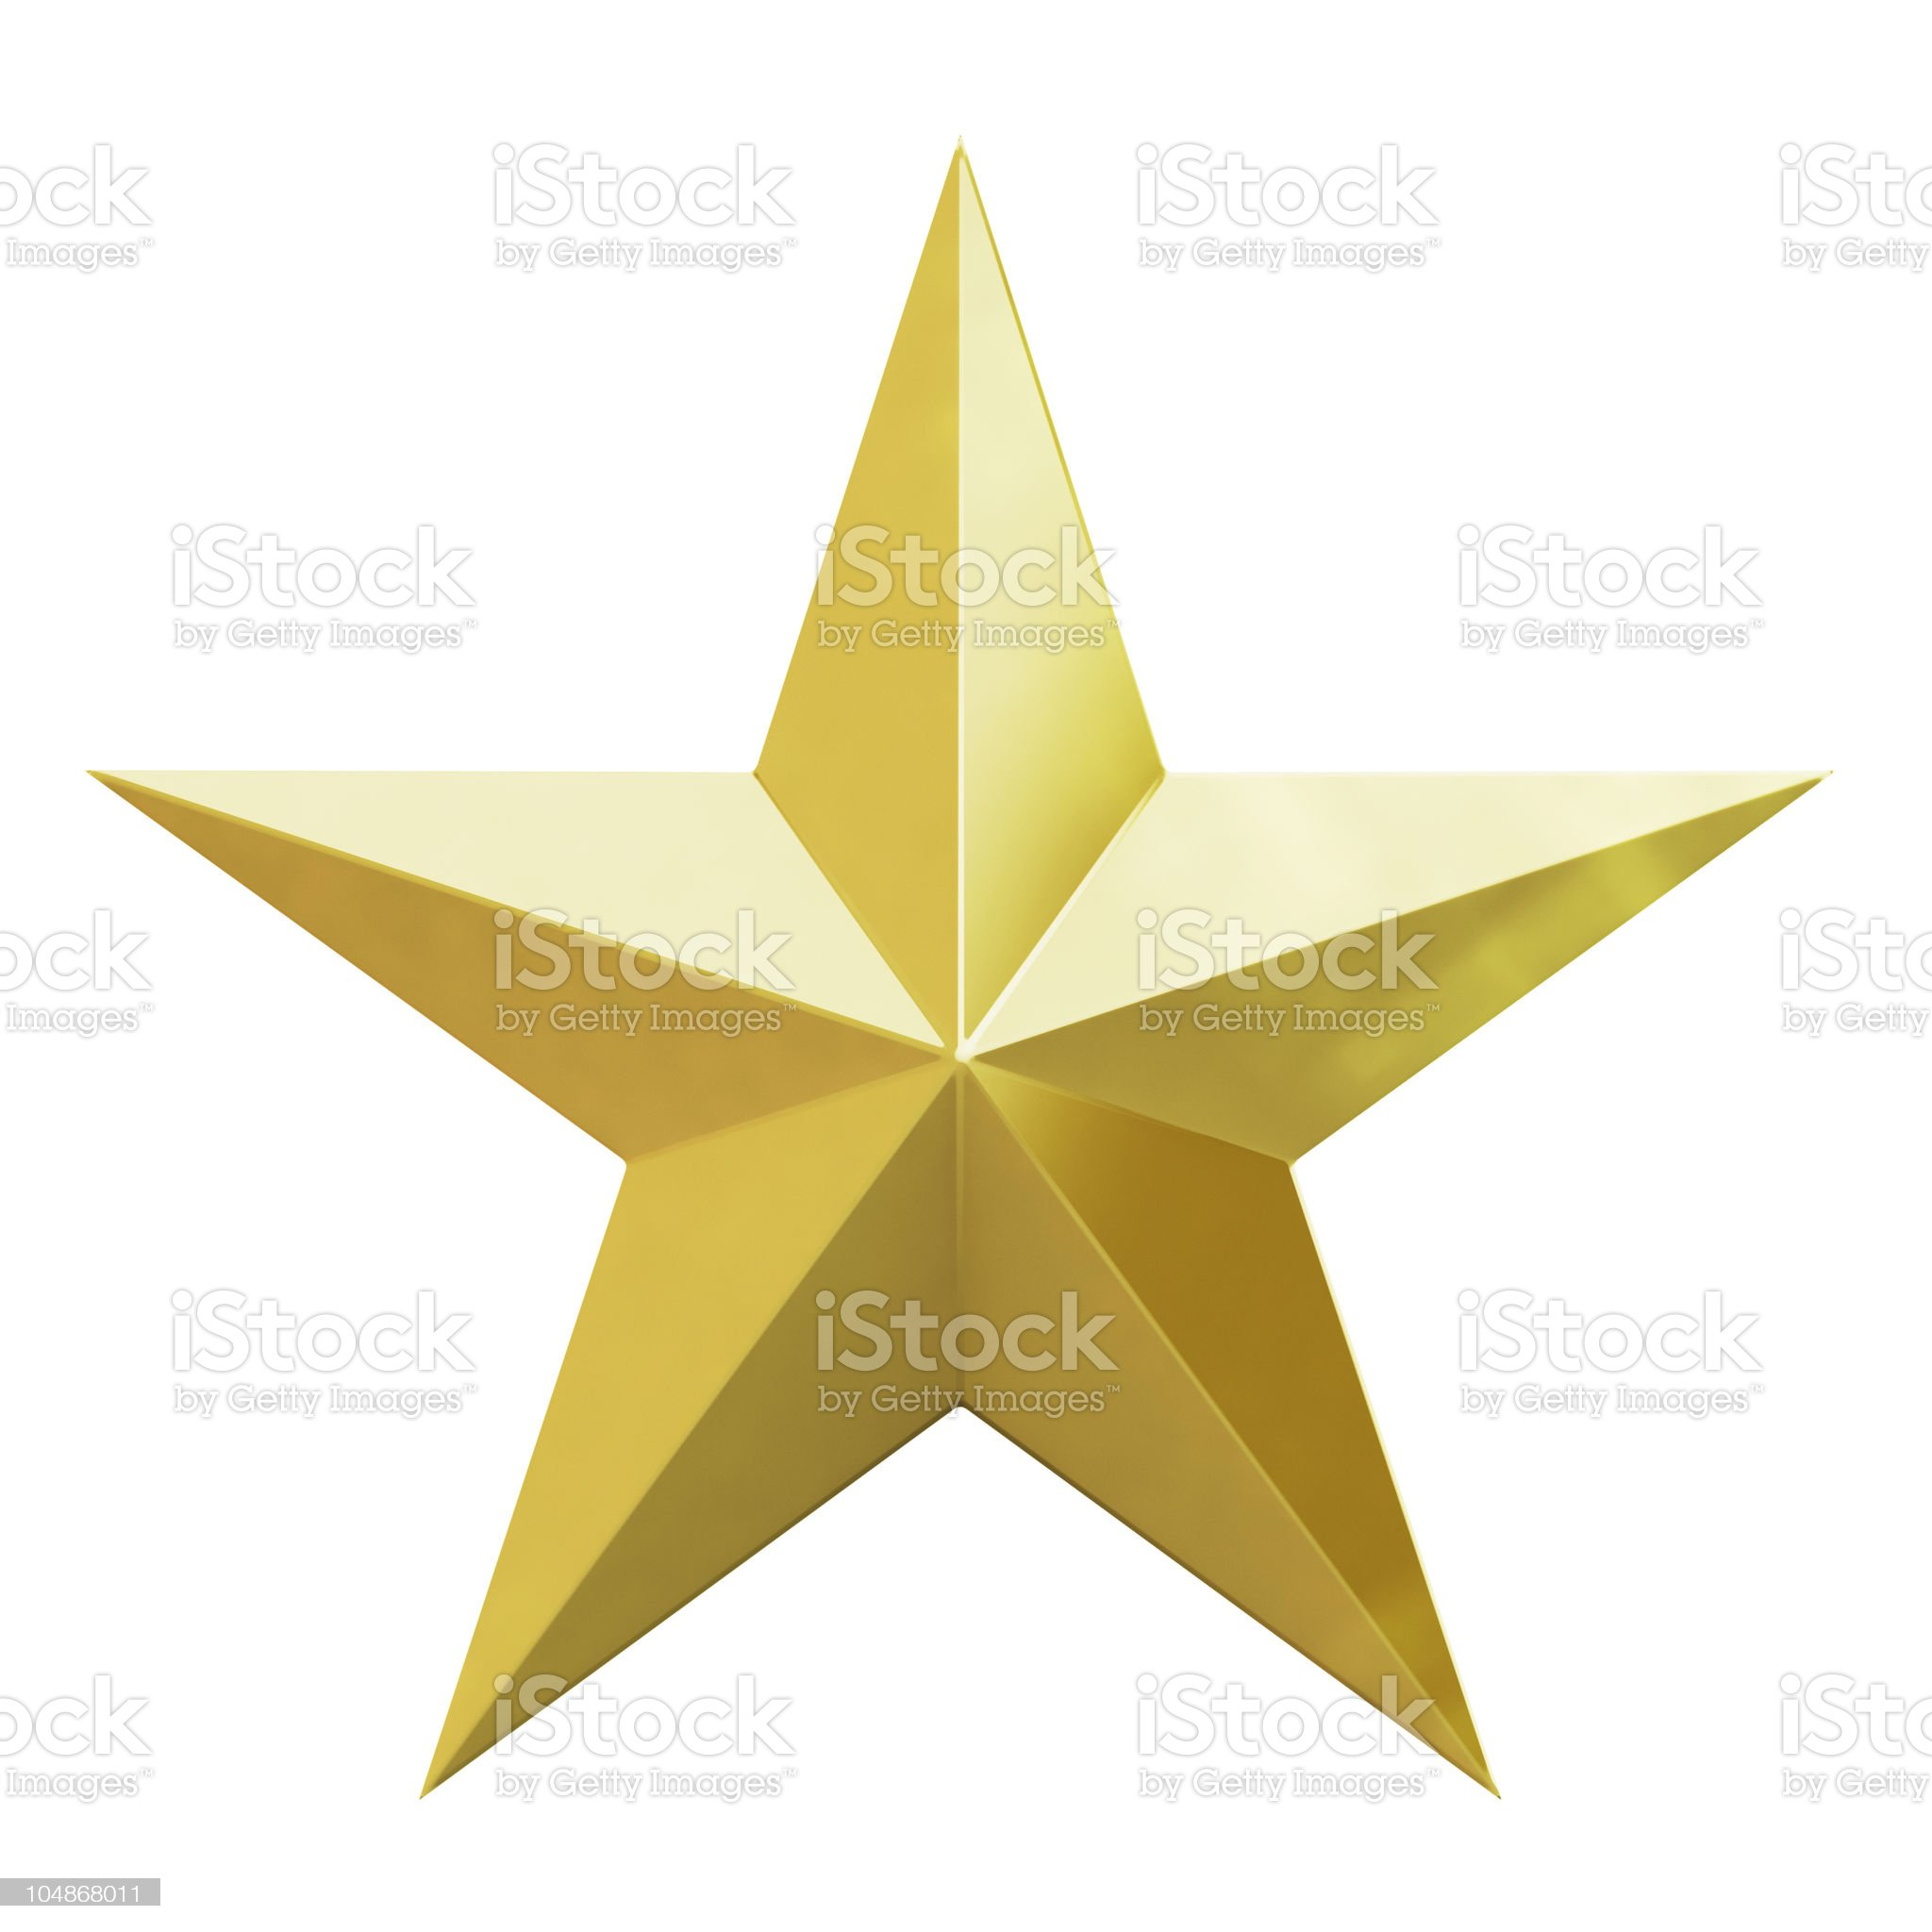 Vector illustration of a Christmas gold star on white royalty-free stock photo